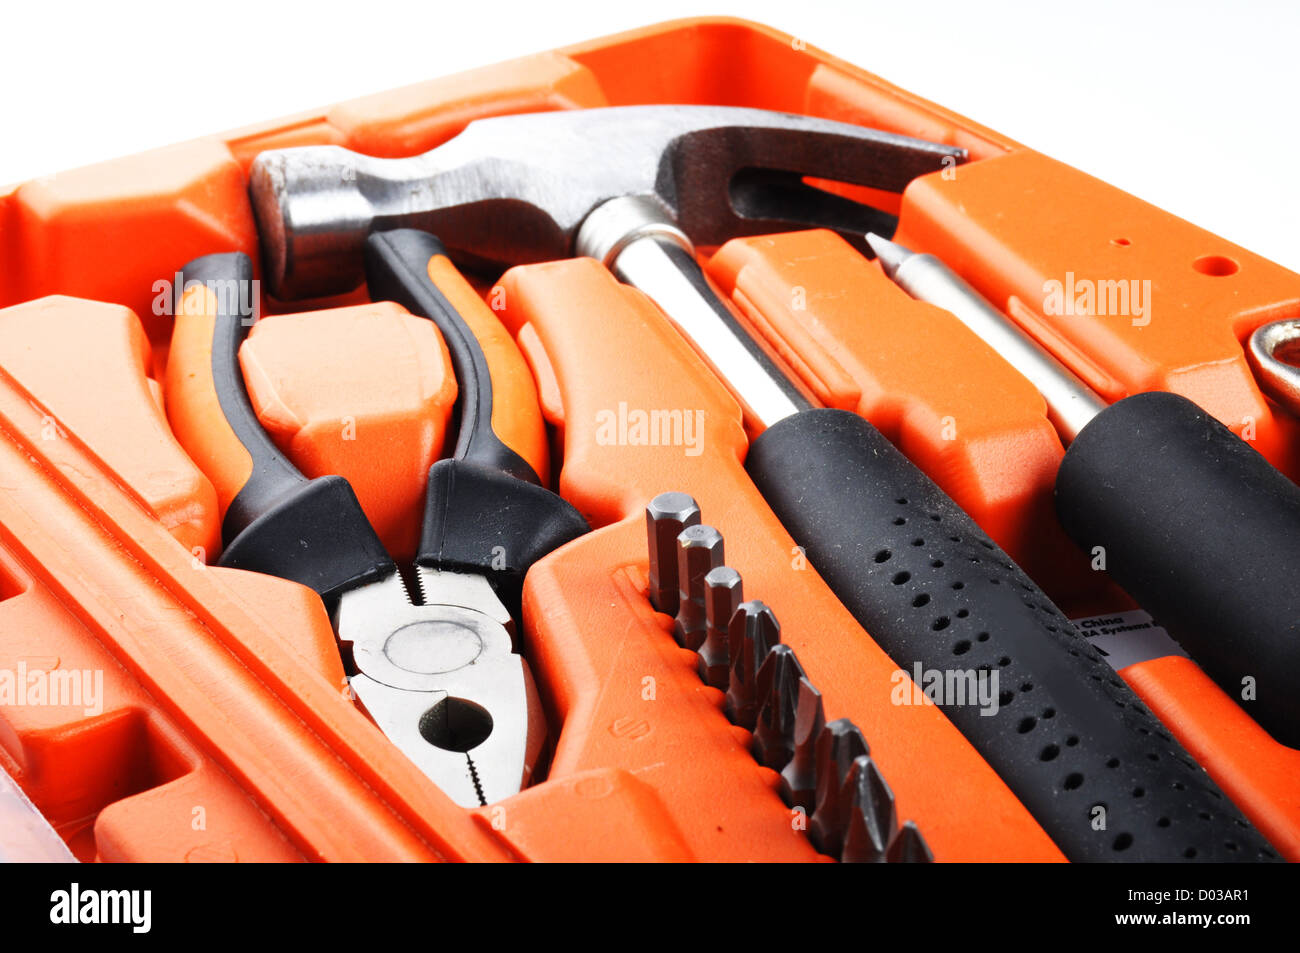 toolbox kit with hammer and screwdriver showing construction concept - Stock Image